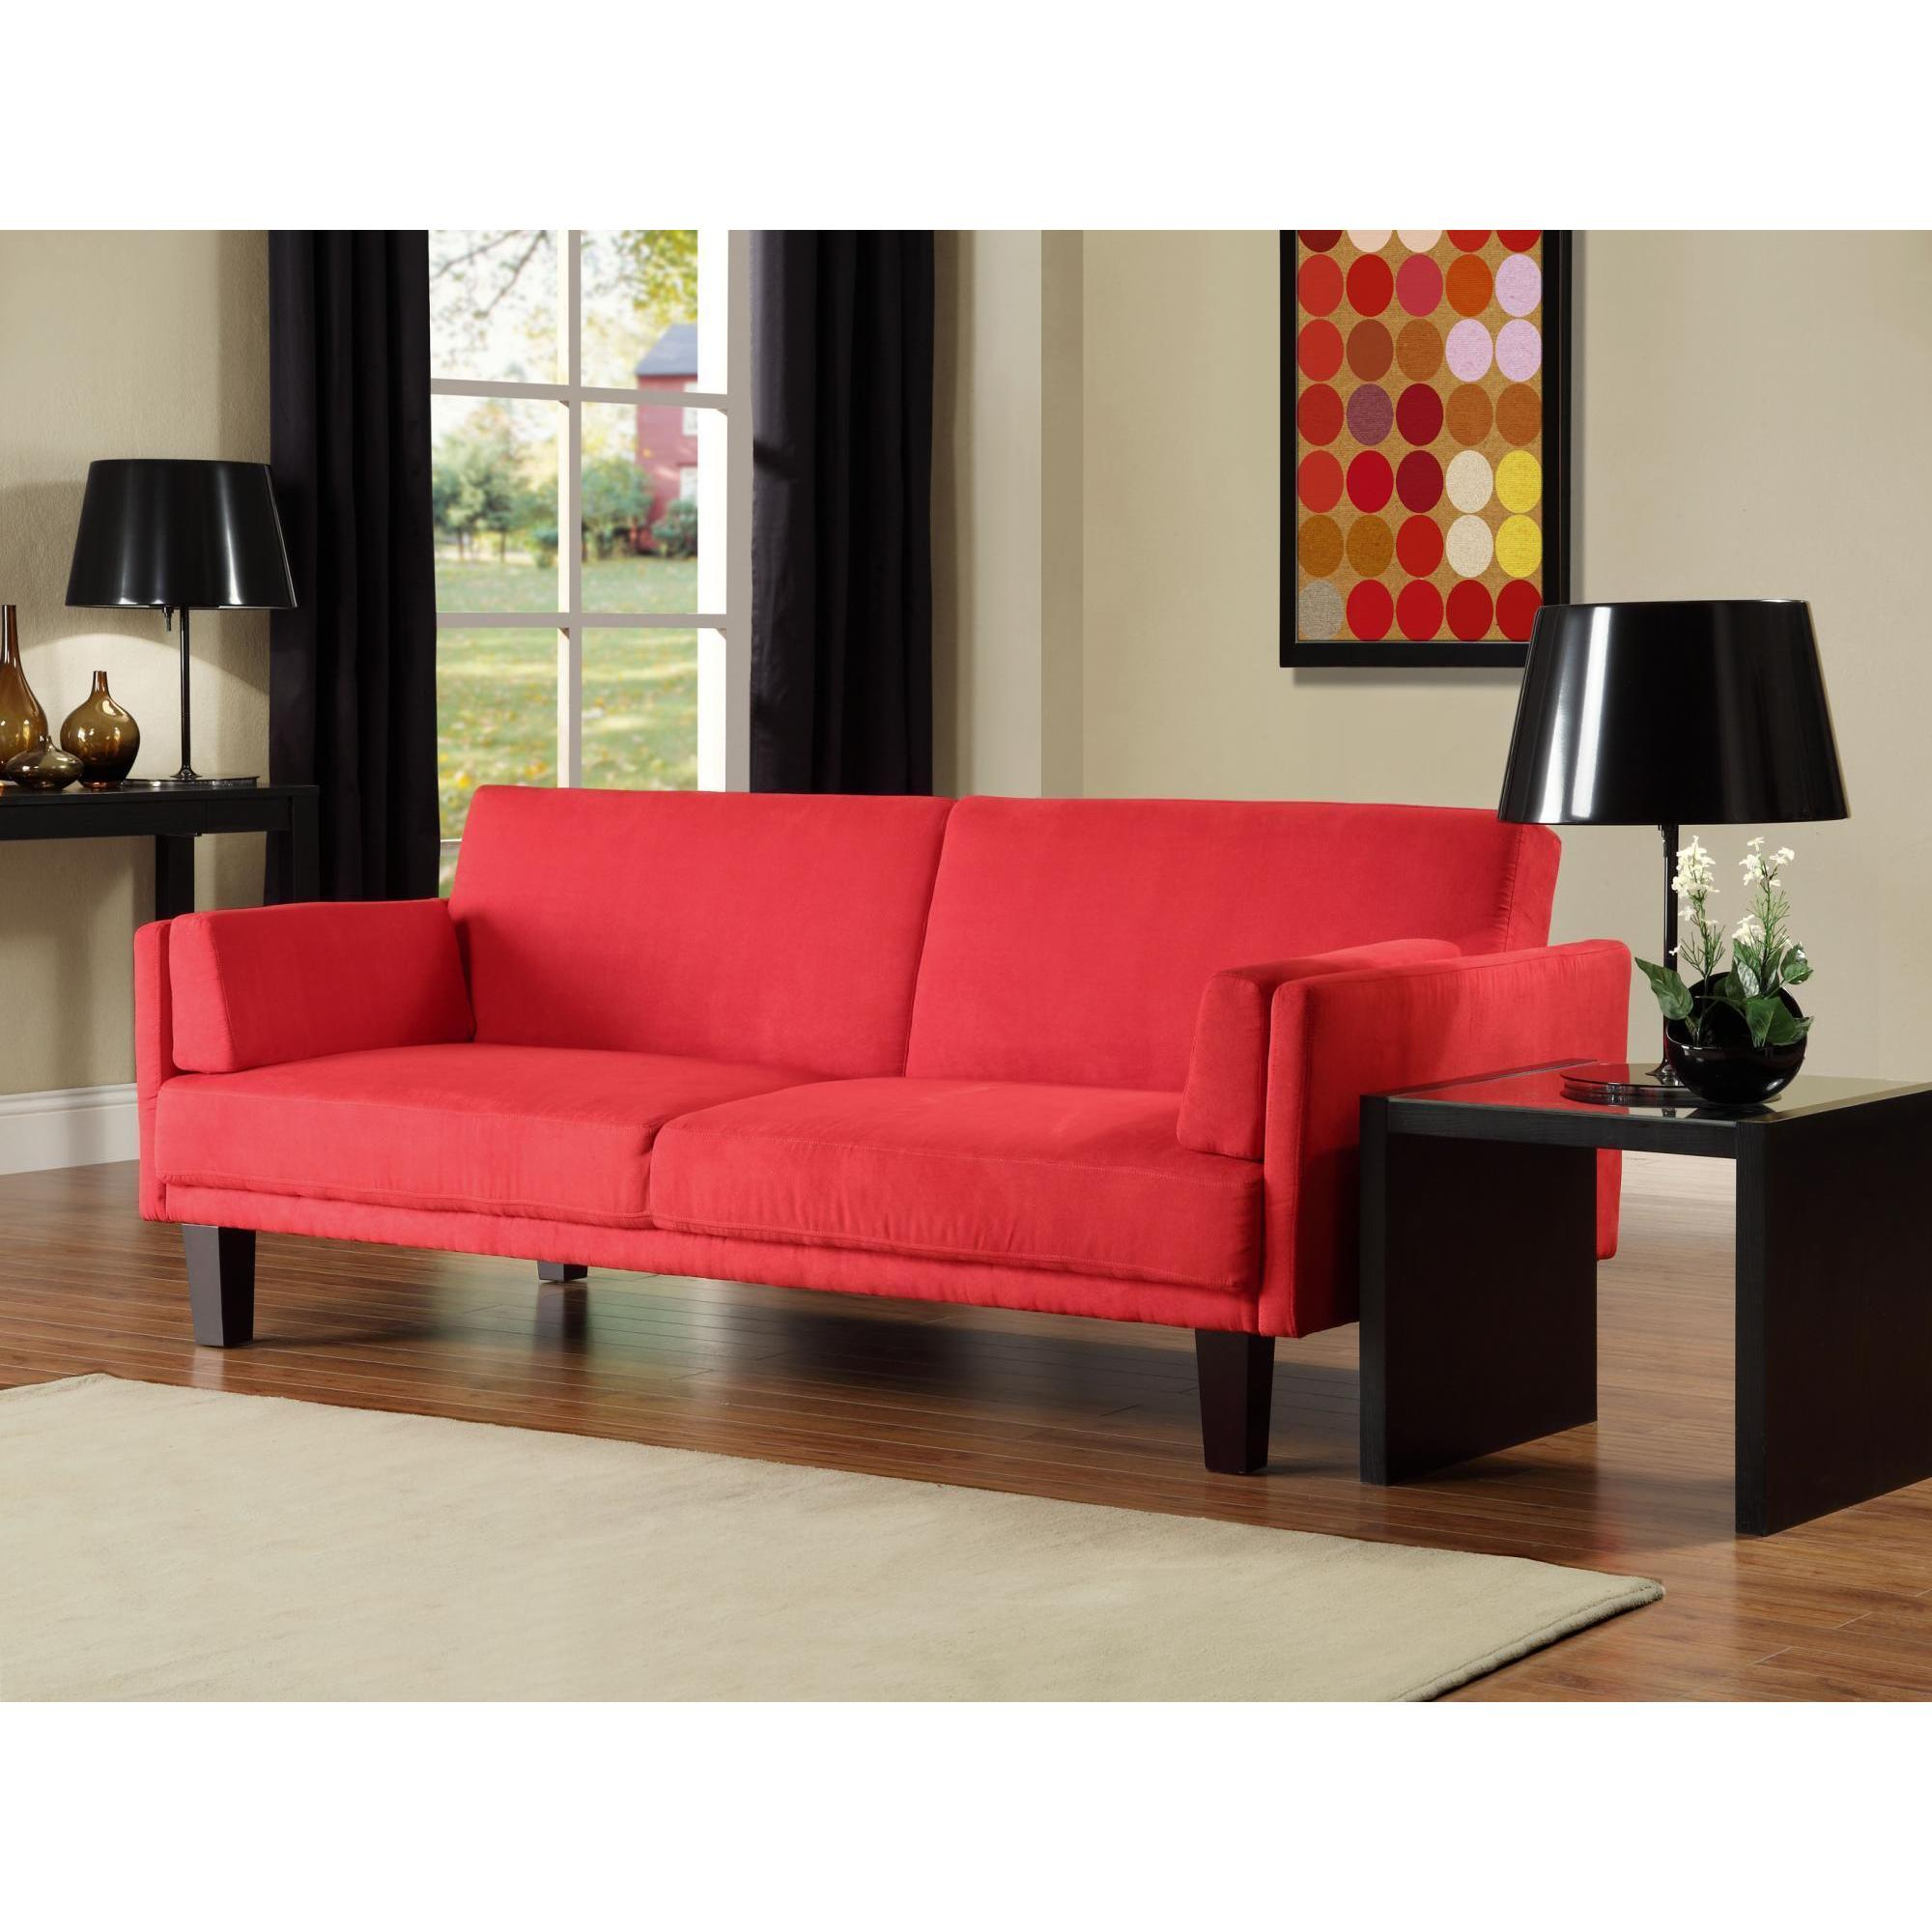 Metro Futon Sofa Bed Reviews